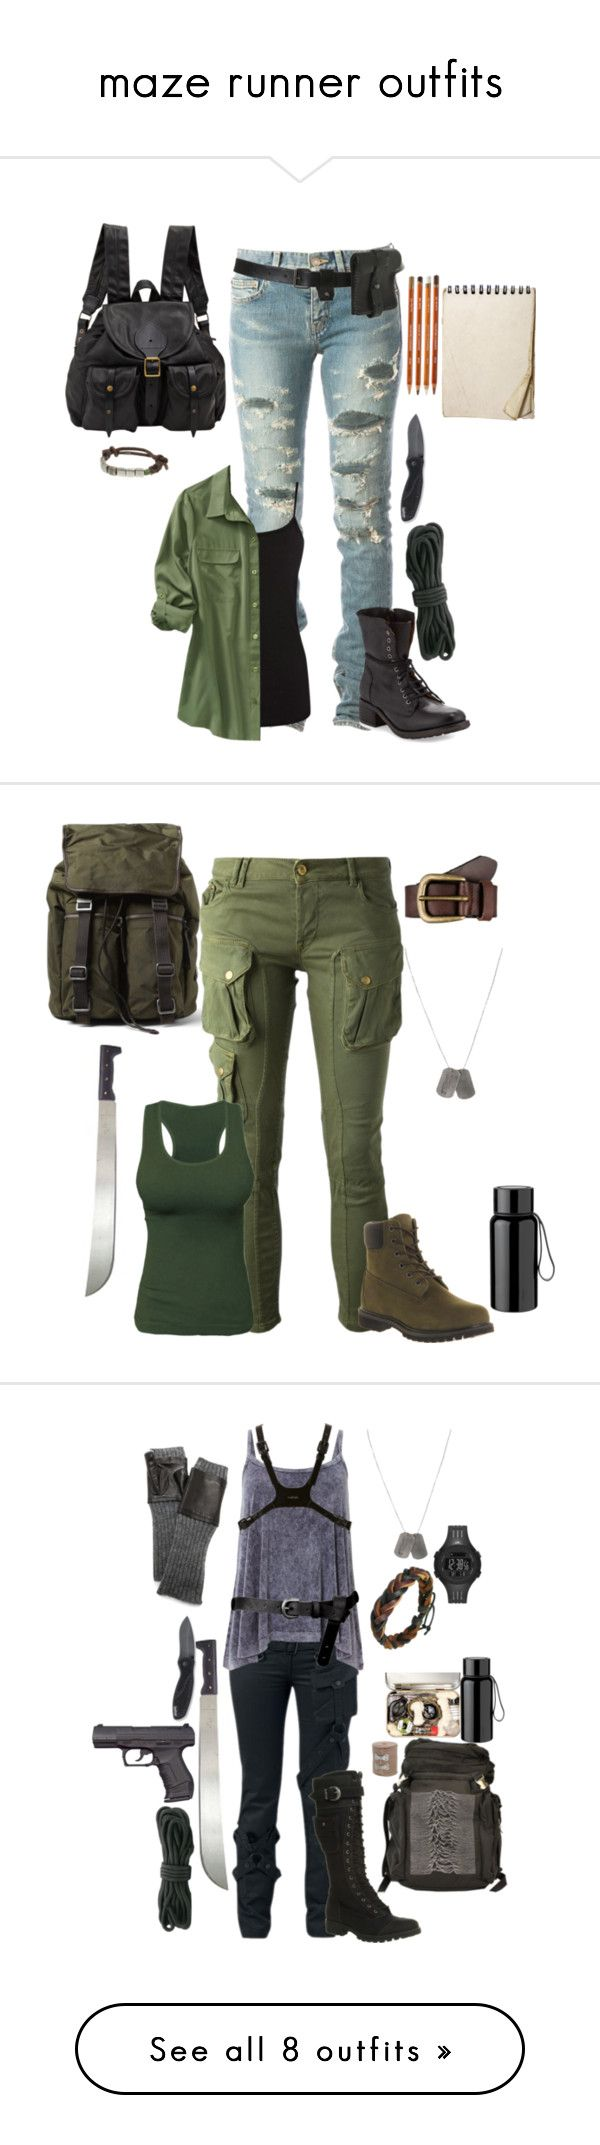 U0026quot;maze runner outfitsu0026quot; by gone-girl liked on Polyvore | the maze | Pinterest | Maze runner Maze ...